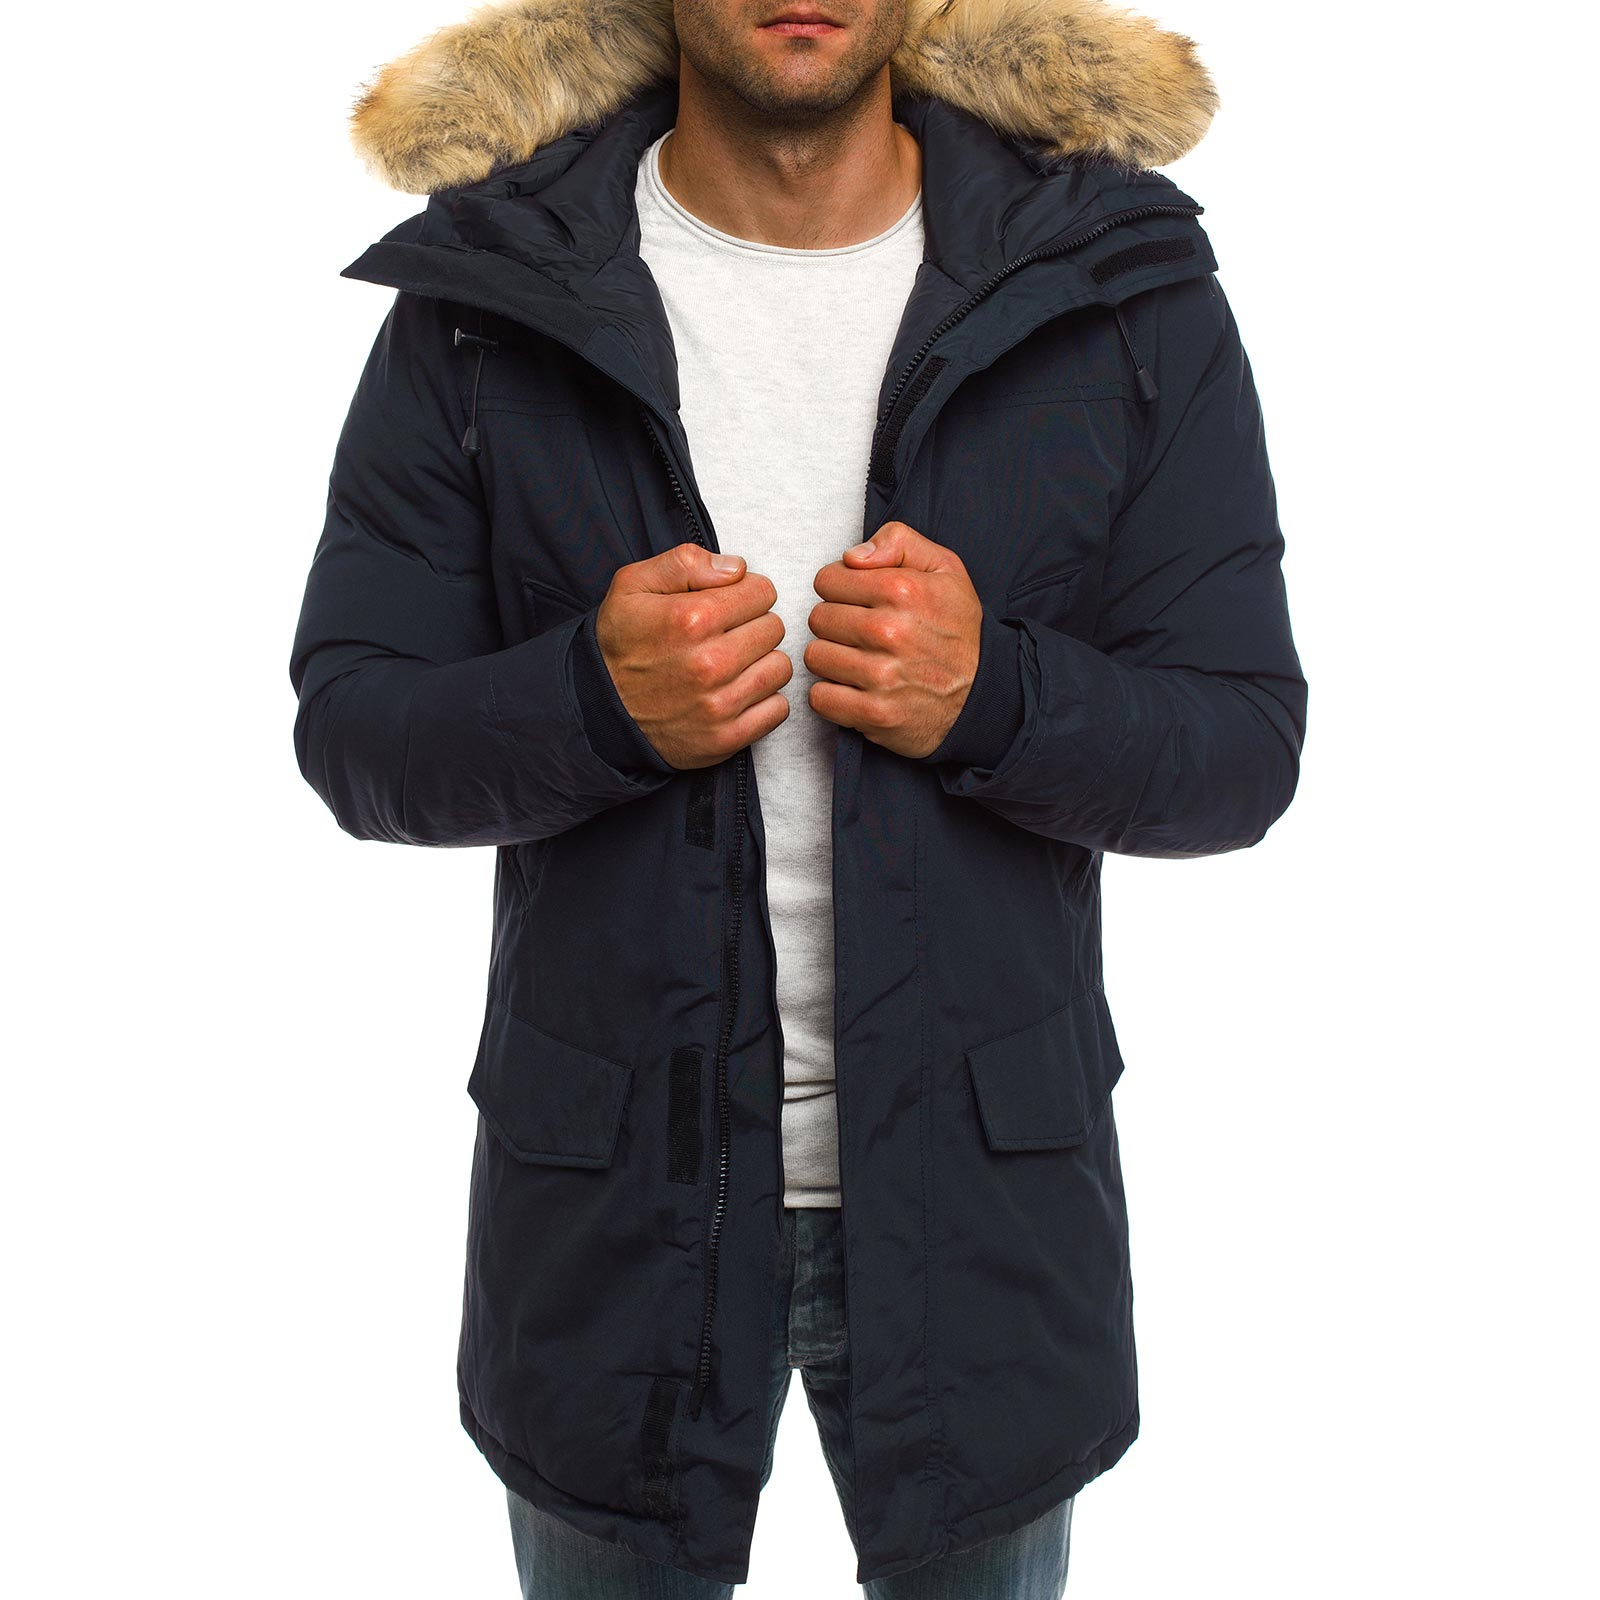 OZONEE J.STYLE Giacca Invernale Uomo Parka giacca sportiva cappotto ... ee0522ba394